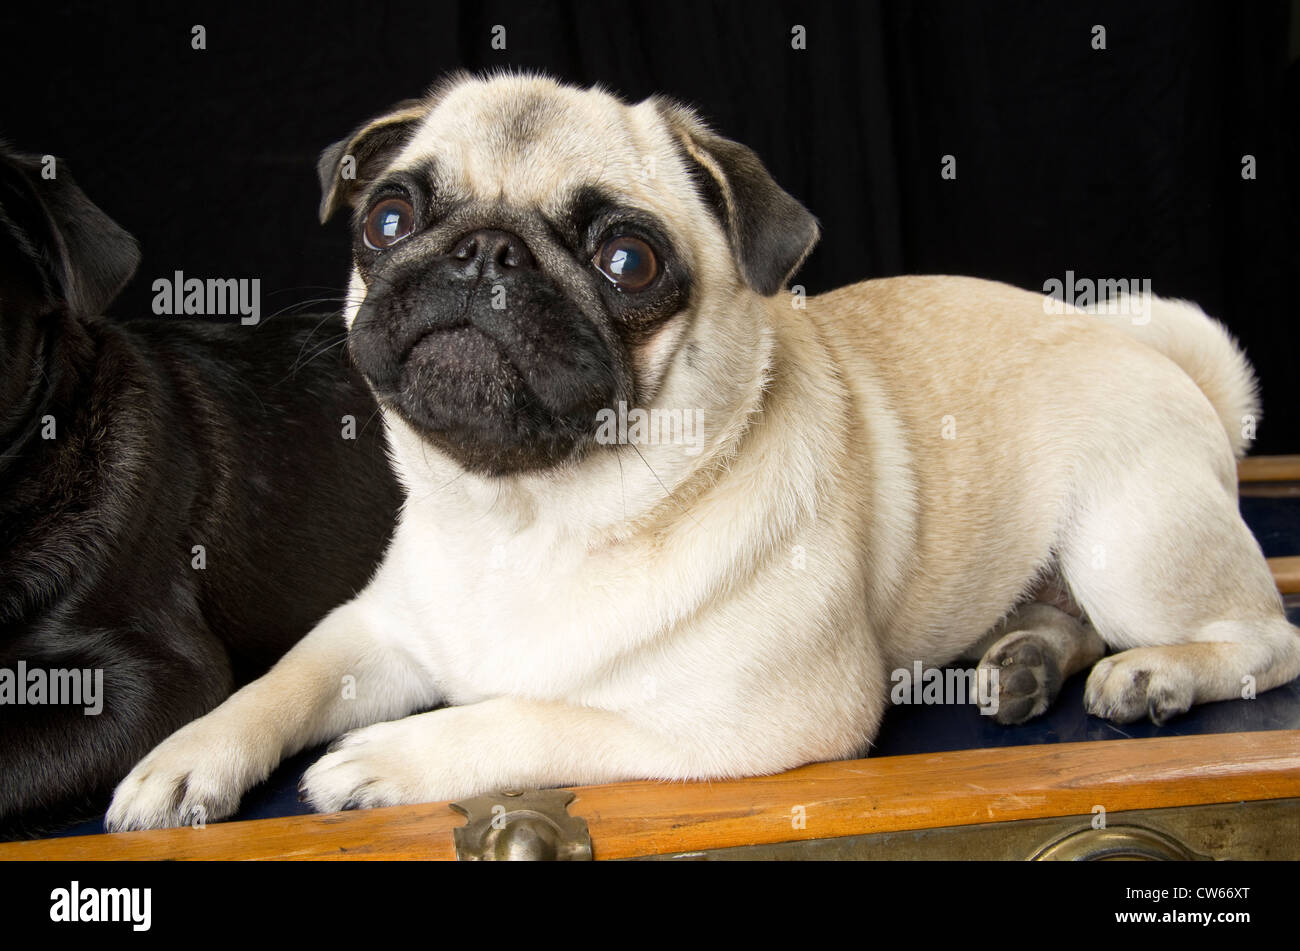 A fawn coloured pug, 1.5 years old, sitting atop an antique trunk. - Stock Image